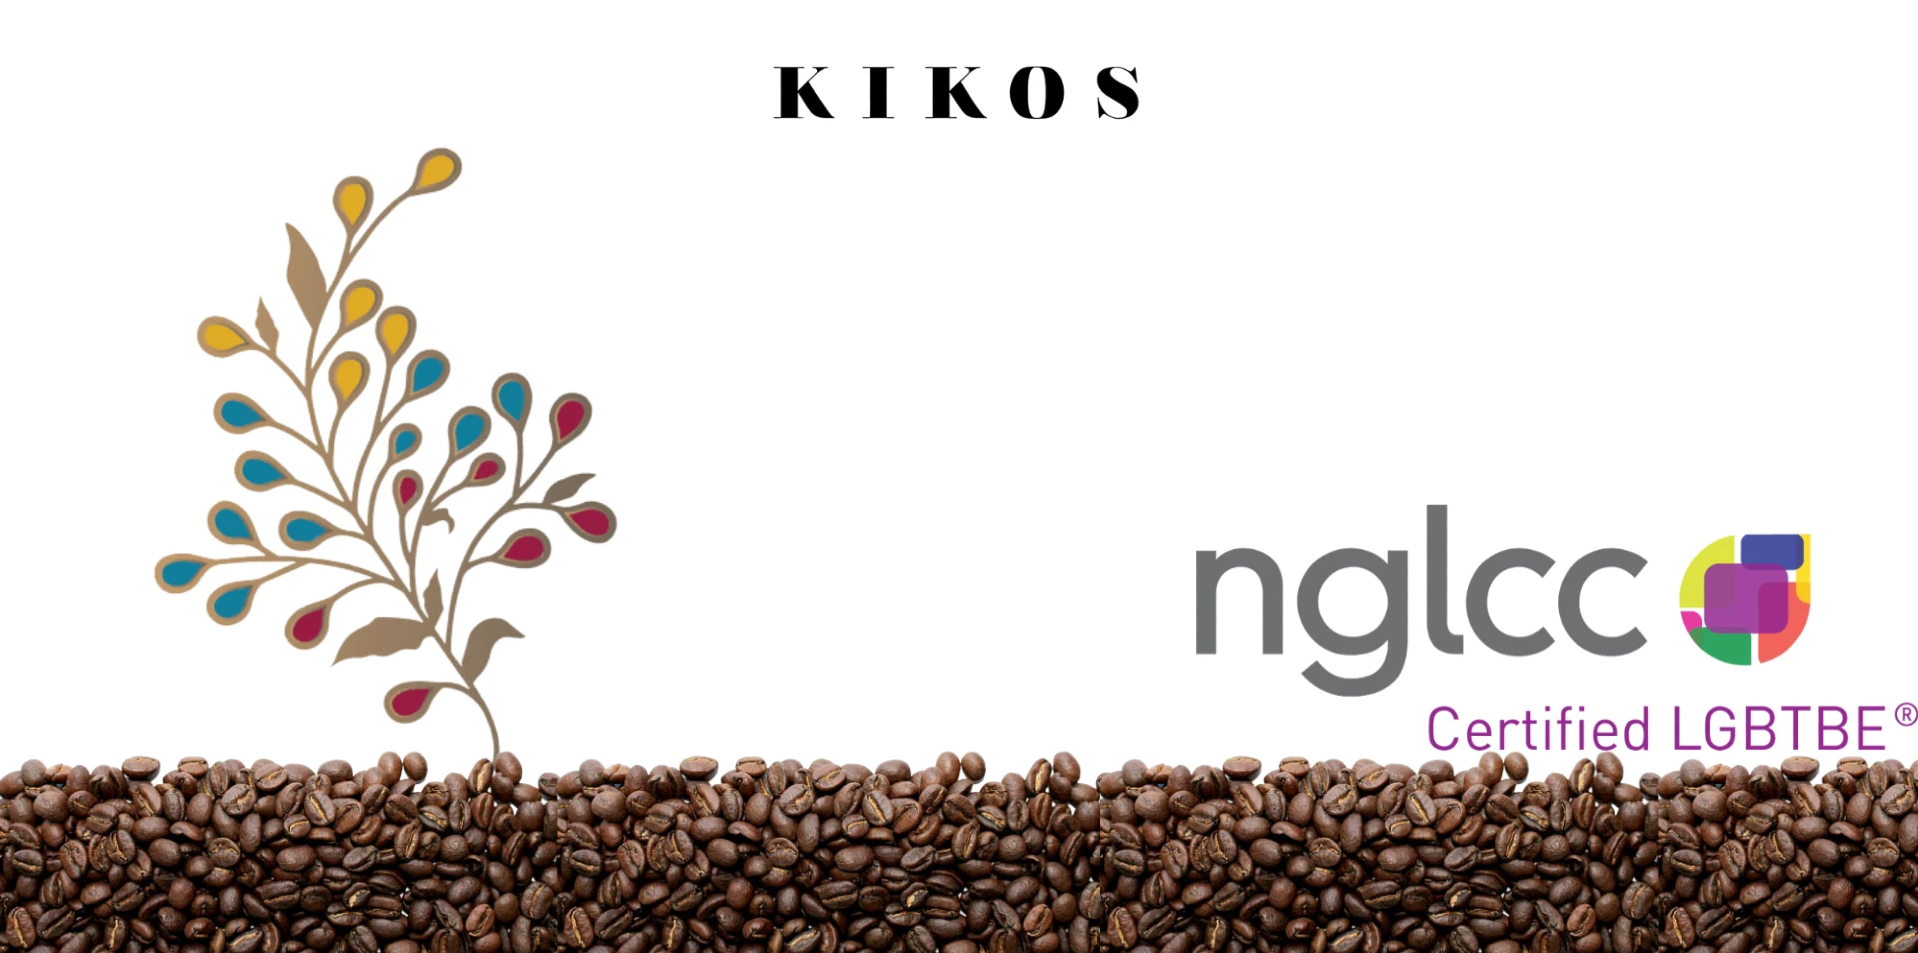 Kikos Coffee & Tea: Supporting Small Biz One Sip at a Time - NGLCC